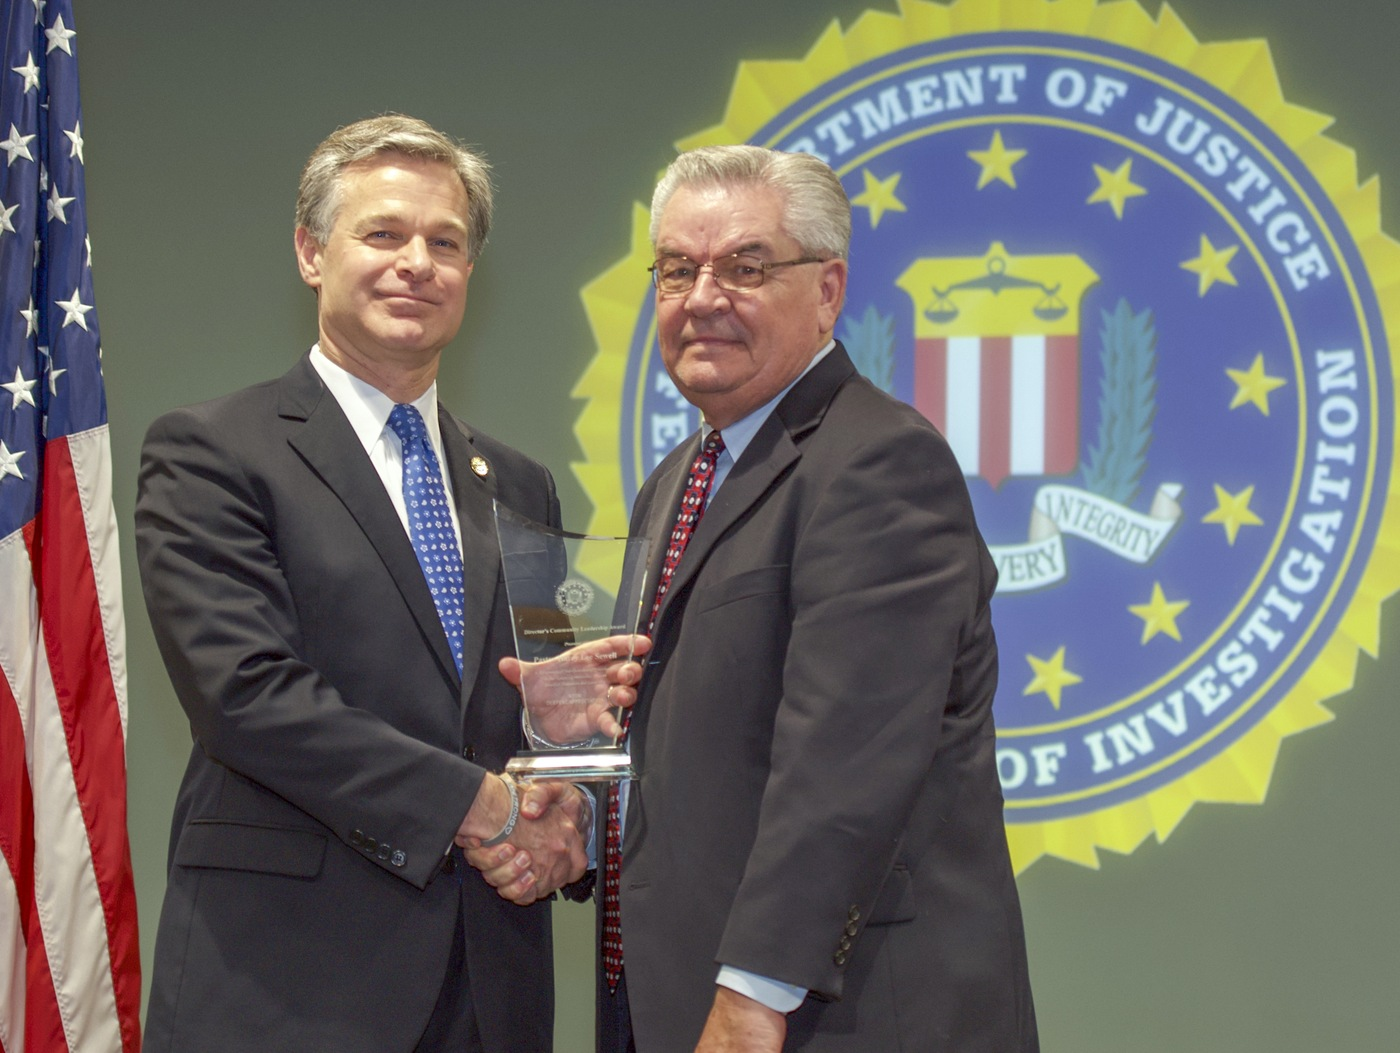 FBI Director Christopher Wray presents Dallas Division recipient Pastor Harry Lee Sewell with the Director's Community Leadership Award (DCLA) at a ceremony at FBI Headquarters on May 3, 2019.